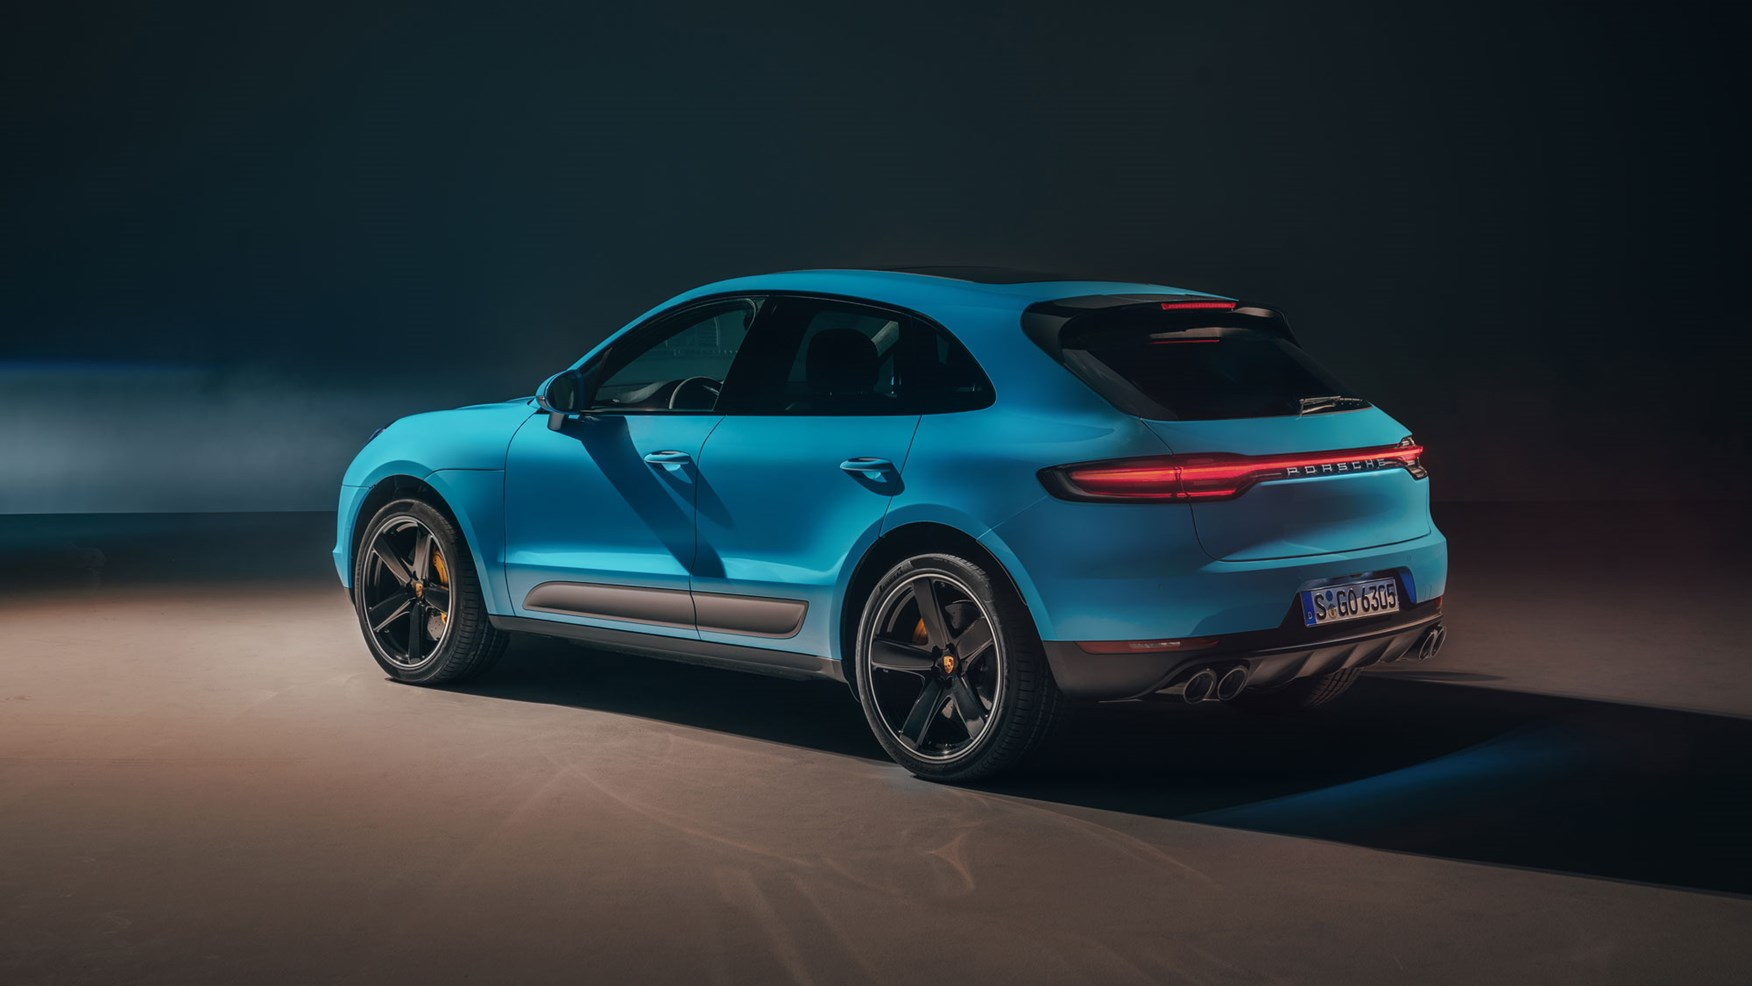 61 The 2019 Porsche Macan Turbo Price Design and Review